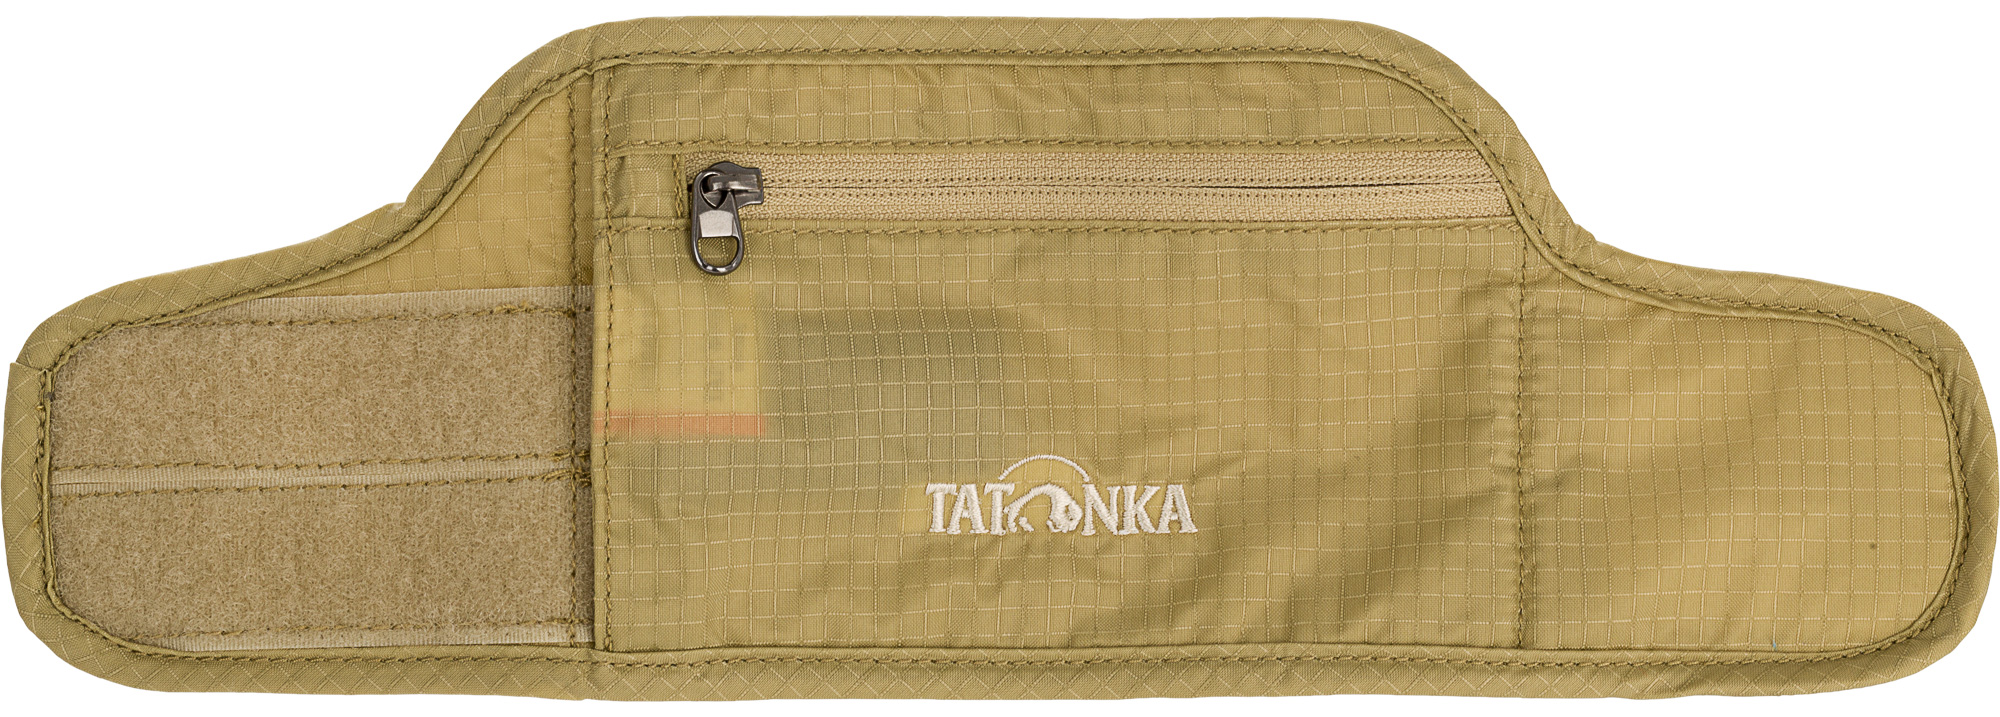 Tatonka Кошелек Tatonka Skin кошелек tatonka travel wallet цвет синий 2915 004